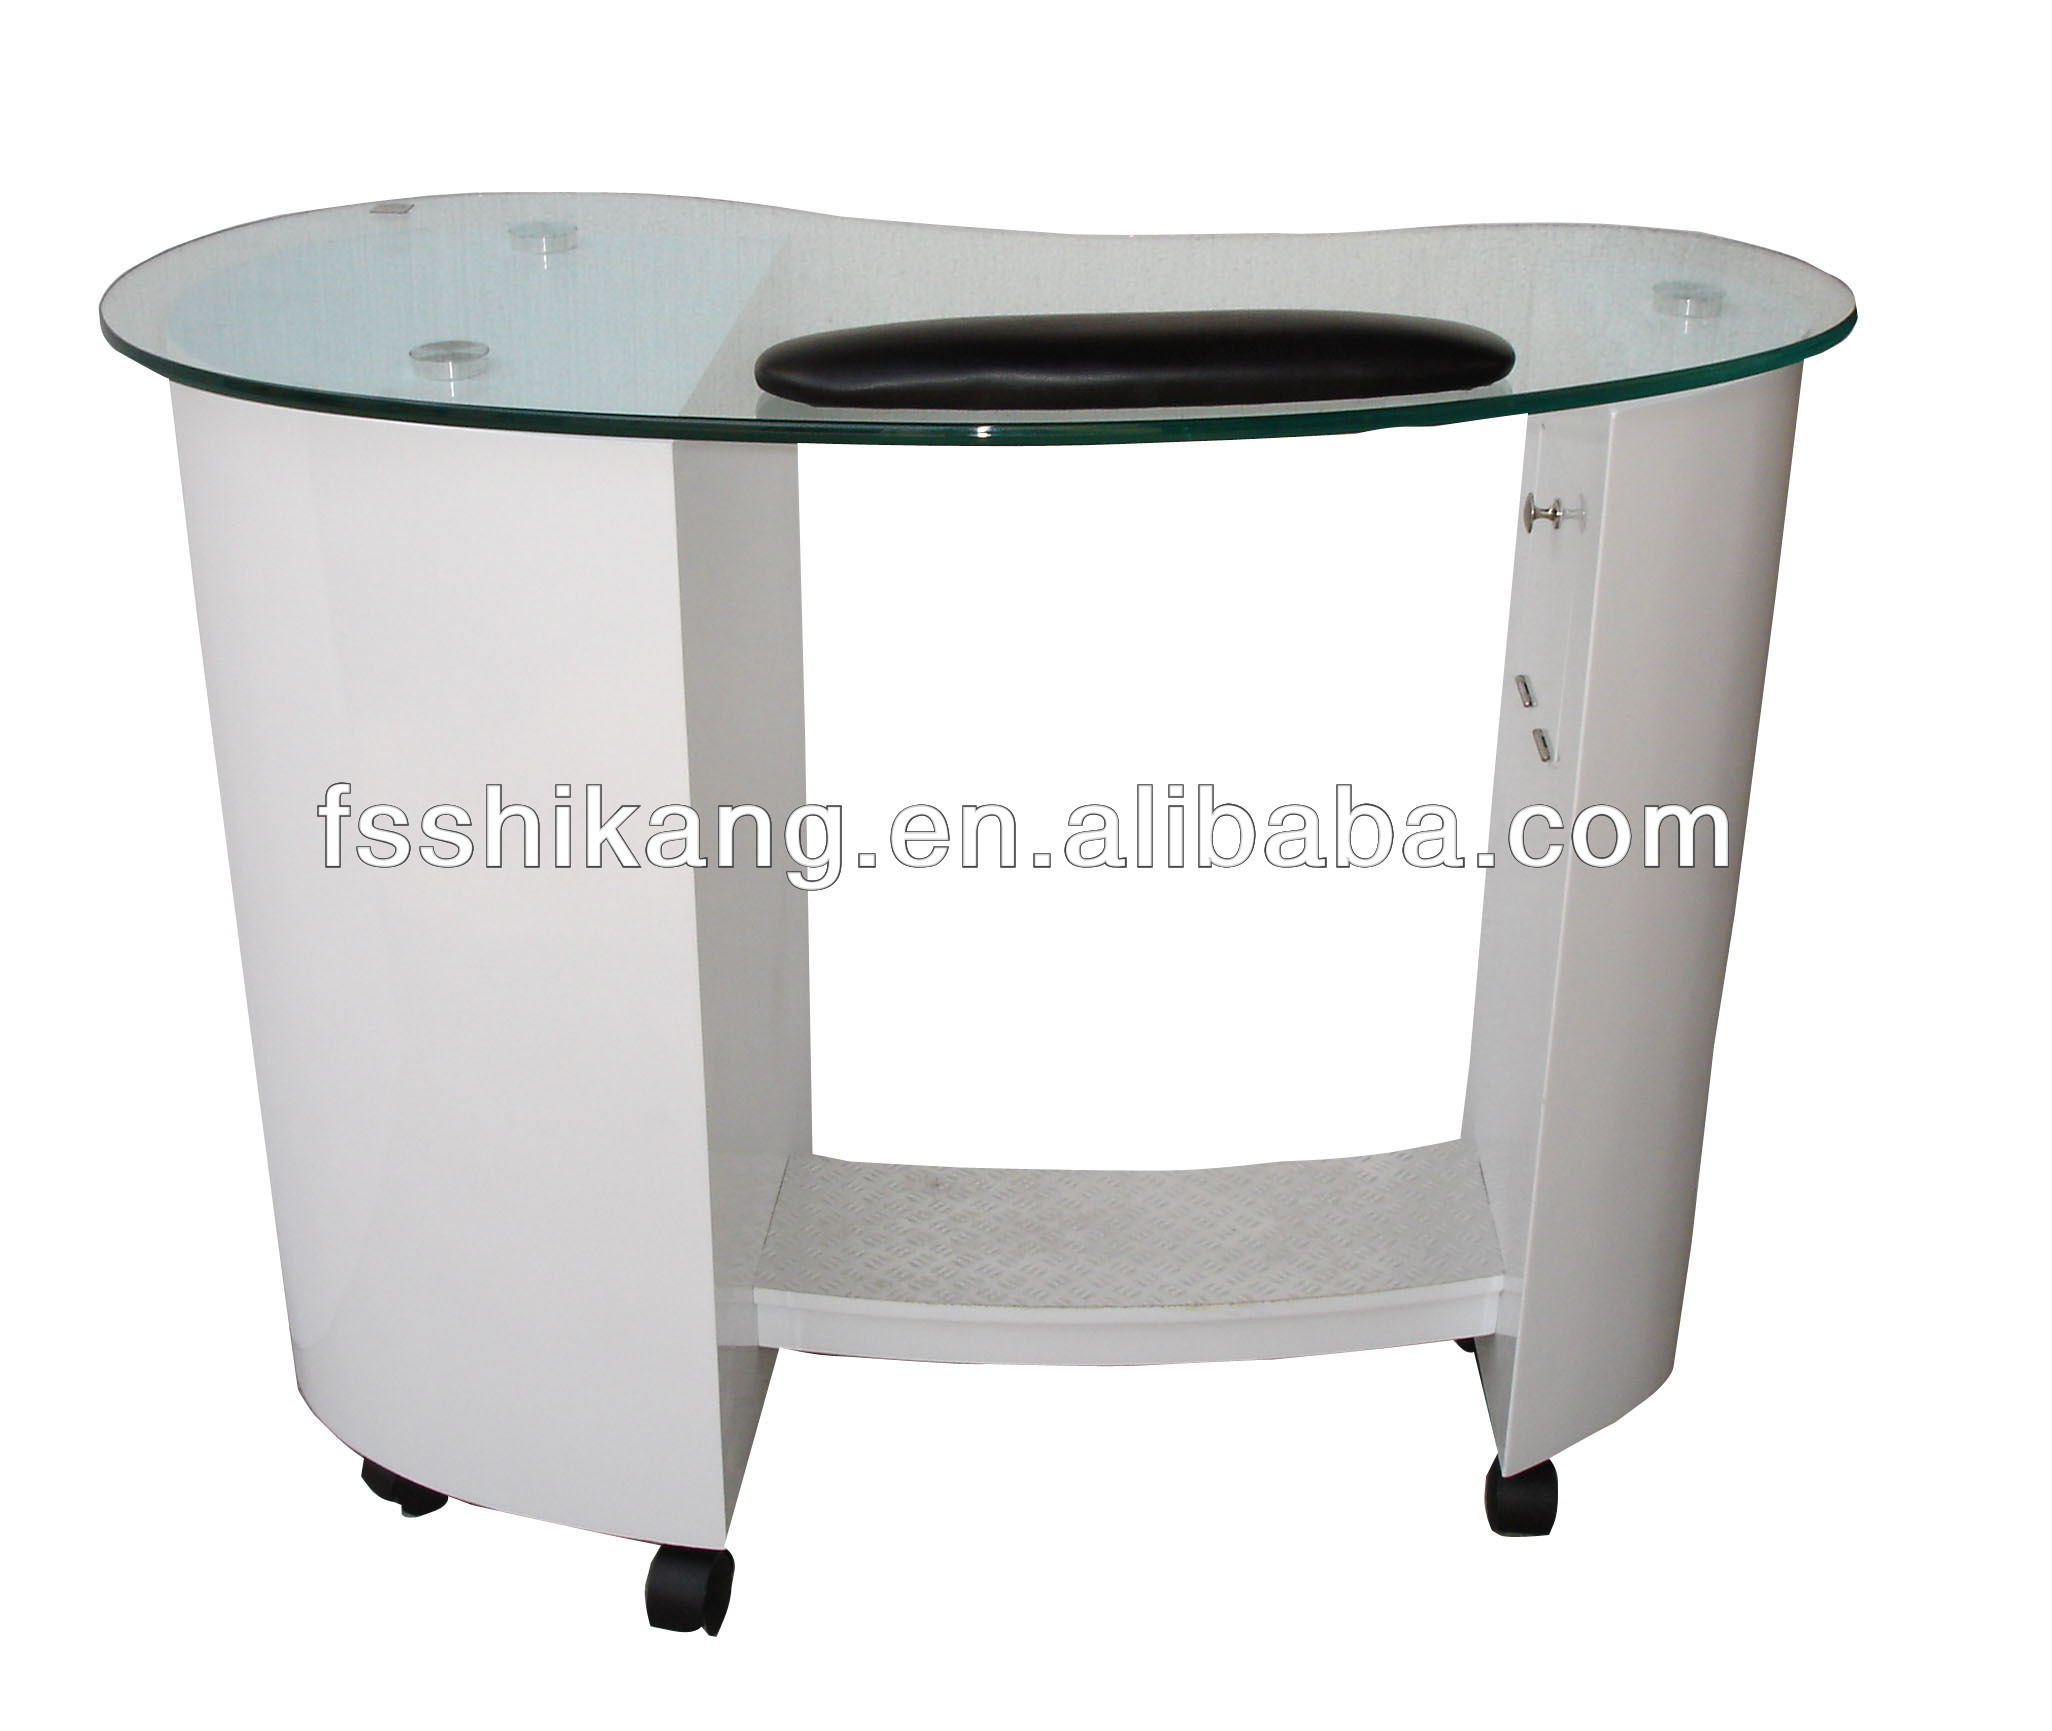 tables warhol comfortel salon beauty for manicure shop table sale